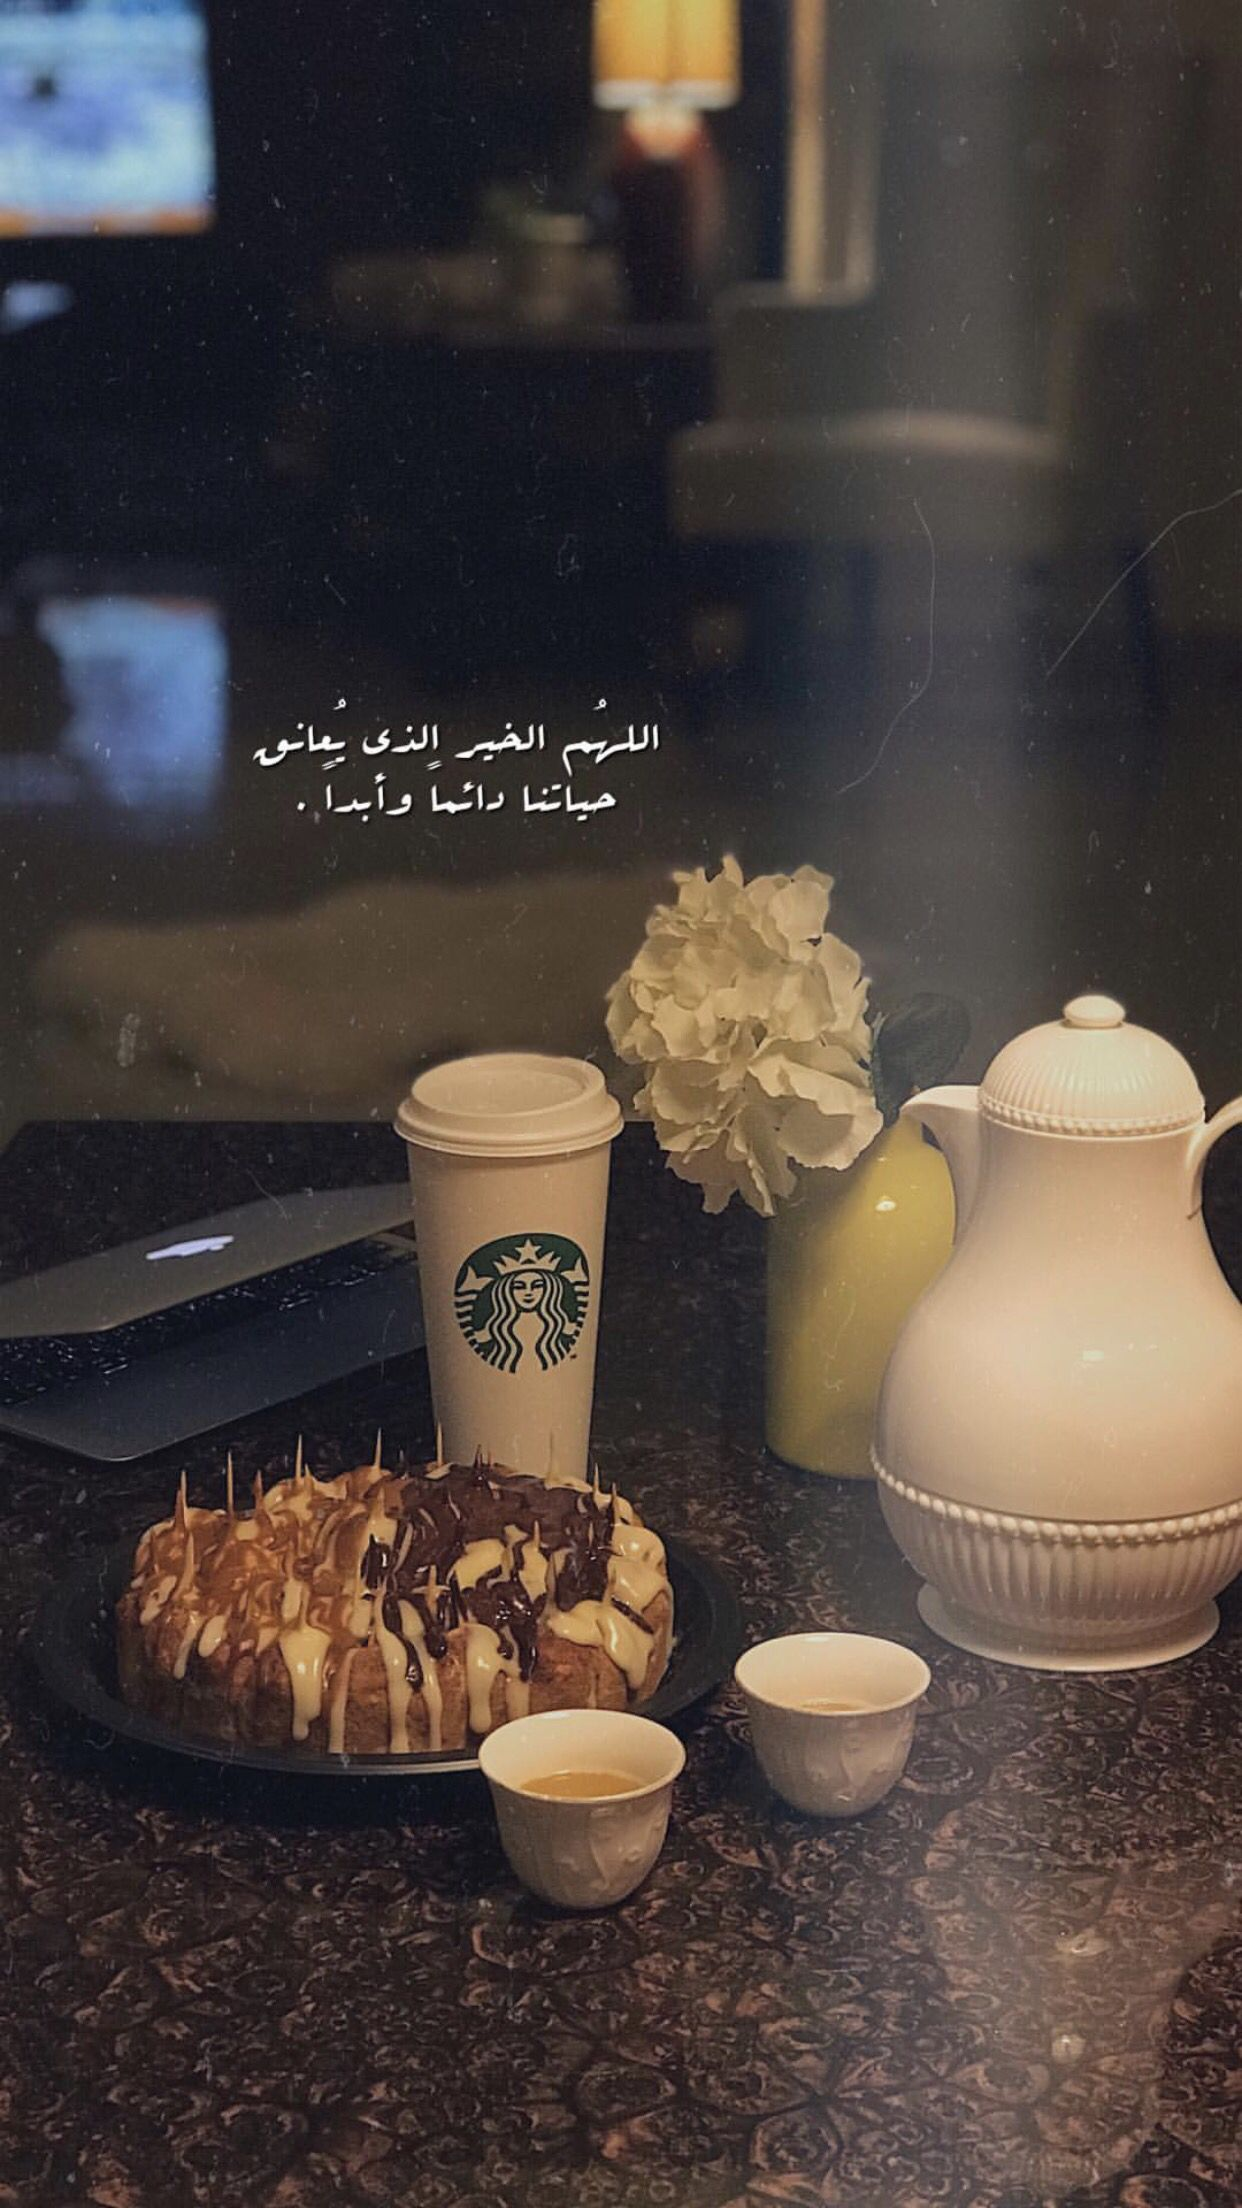 Pin By موضي البليهد On نظافه Coffee Quotes Arabic Quotes Short Quotes Love